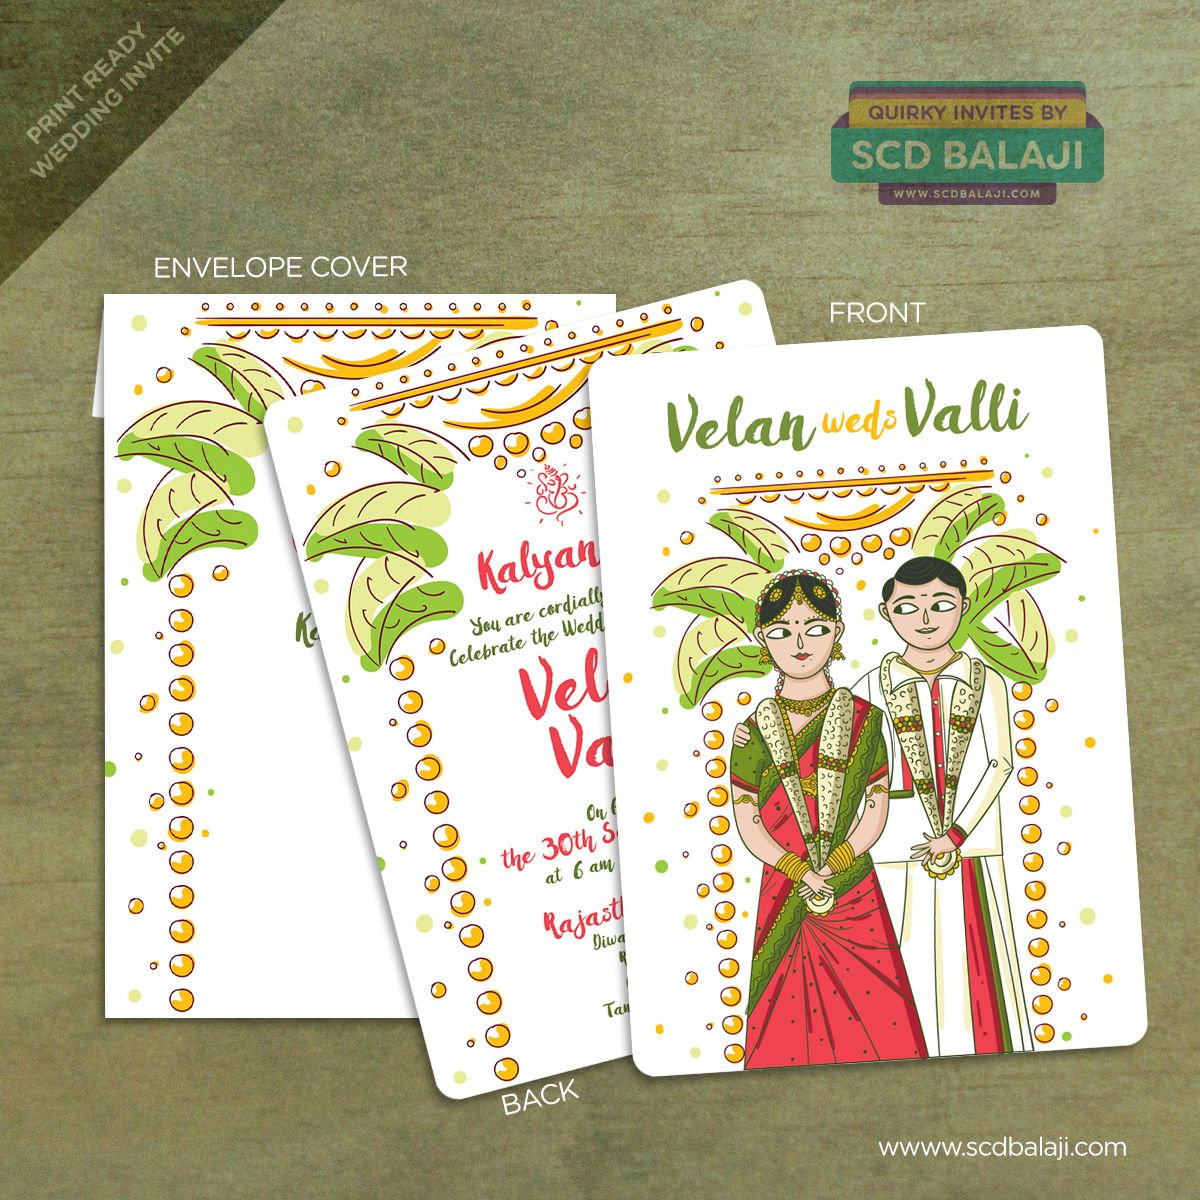 South Indian Tamil Wedding Invitation Design And Illustration By Scd